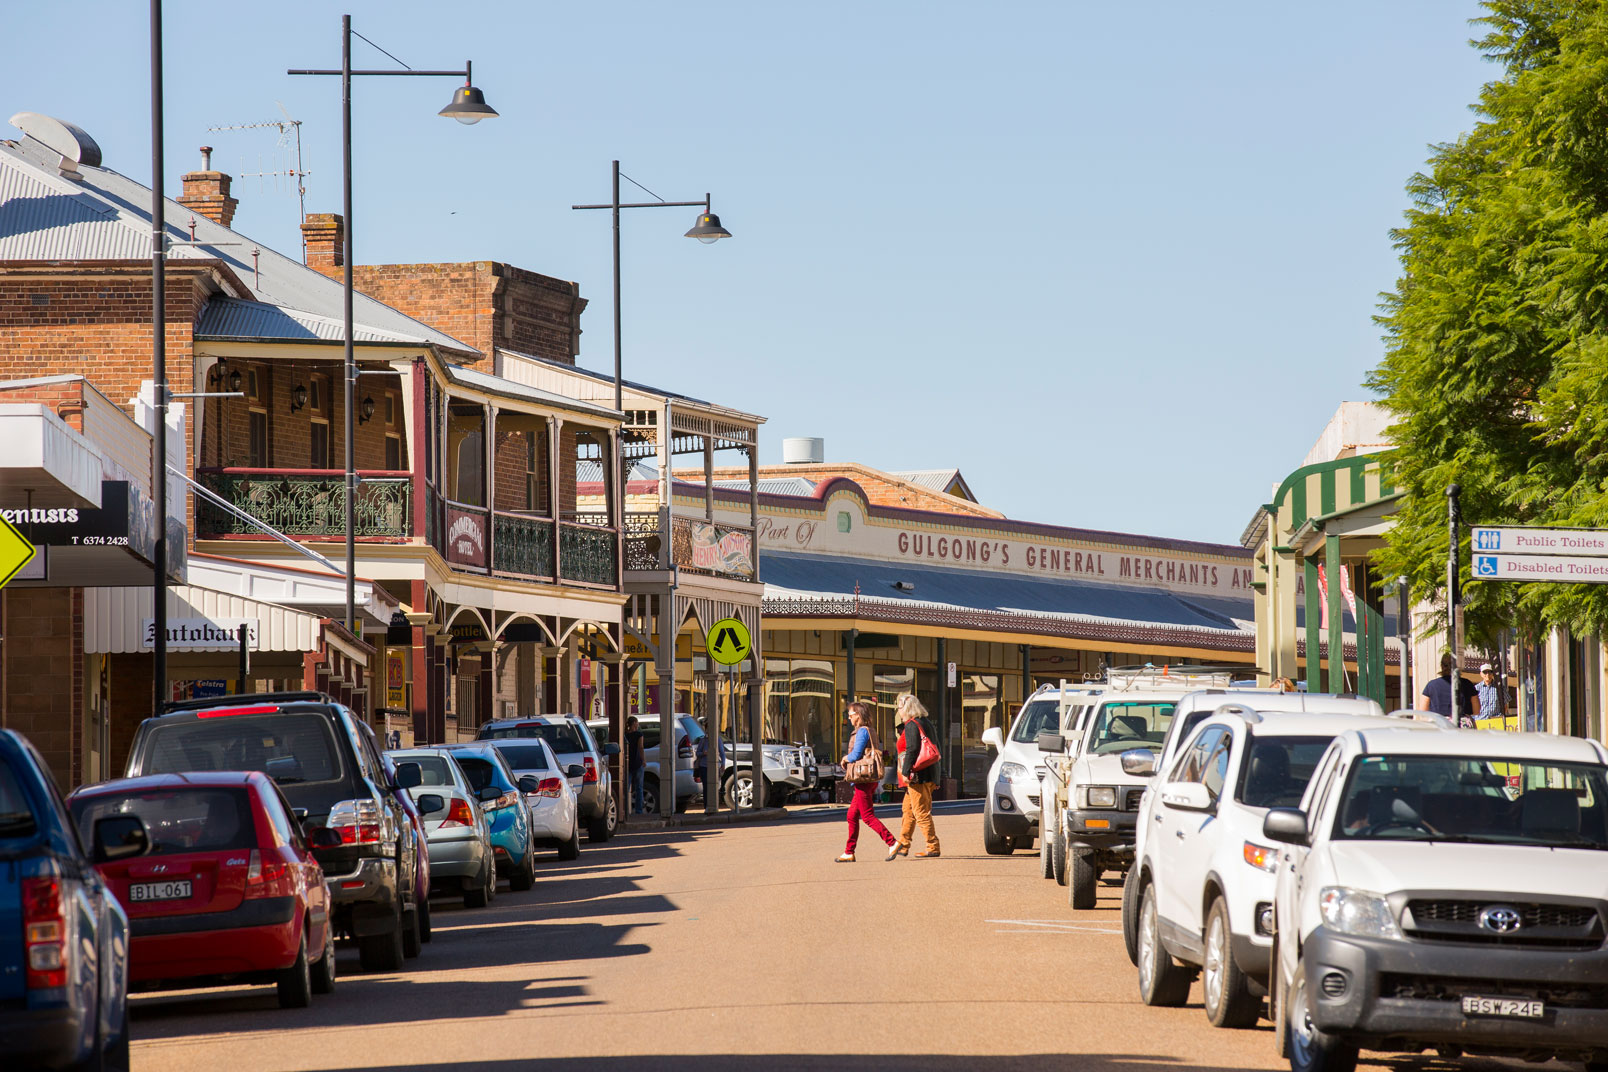 Gulgong_Destination-NSW_James-Horan-0008